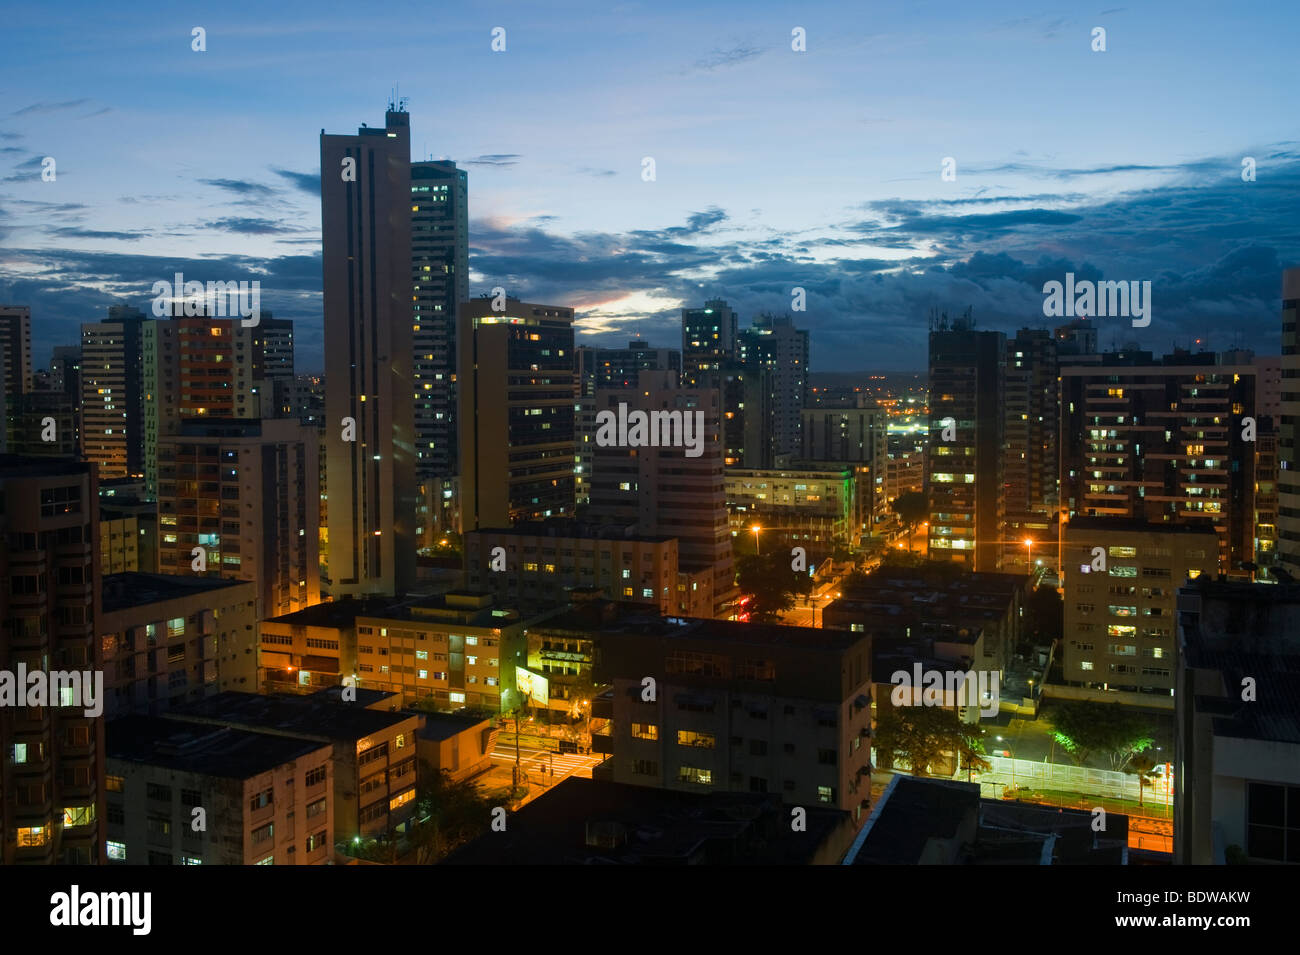 Recife skyline at night, Pernambuco state, Brazil - Stock Image